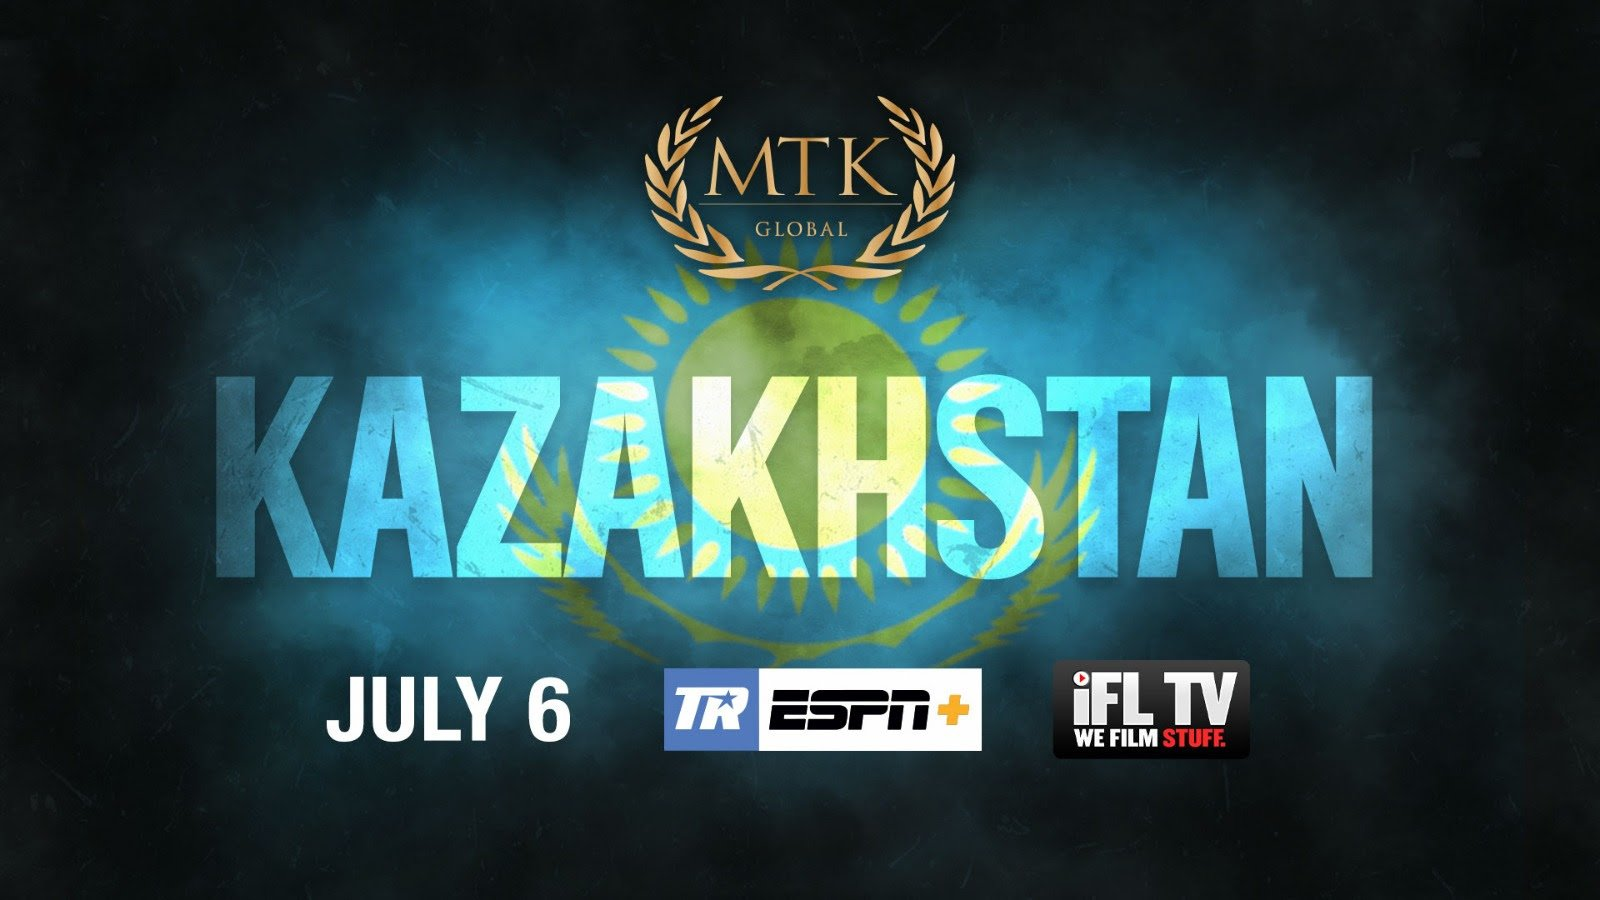 - The long-awaited return of the fearsome Zhankosh Turarov (22-0, 15 KOs) will lead a historic July 6 card in Kazakhstan that includes a world title fight.